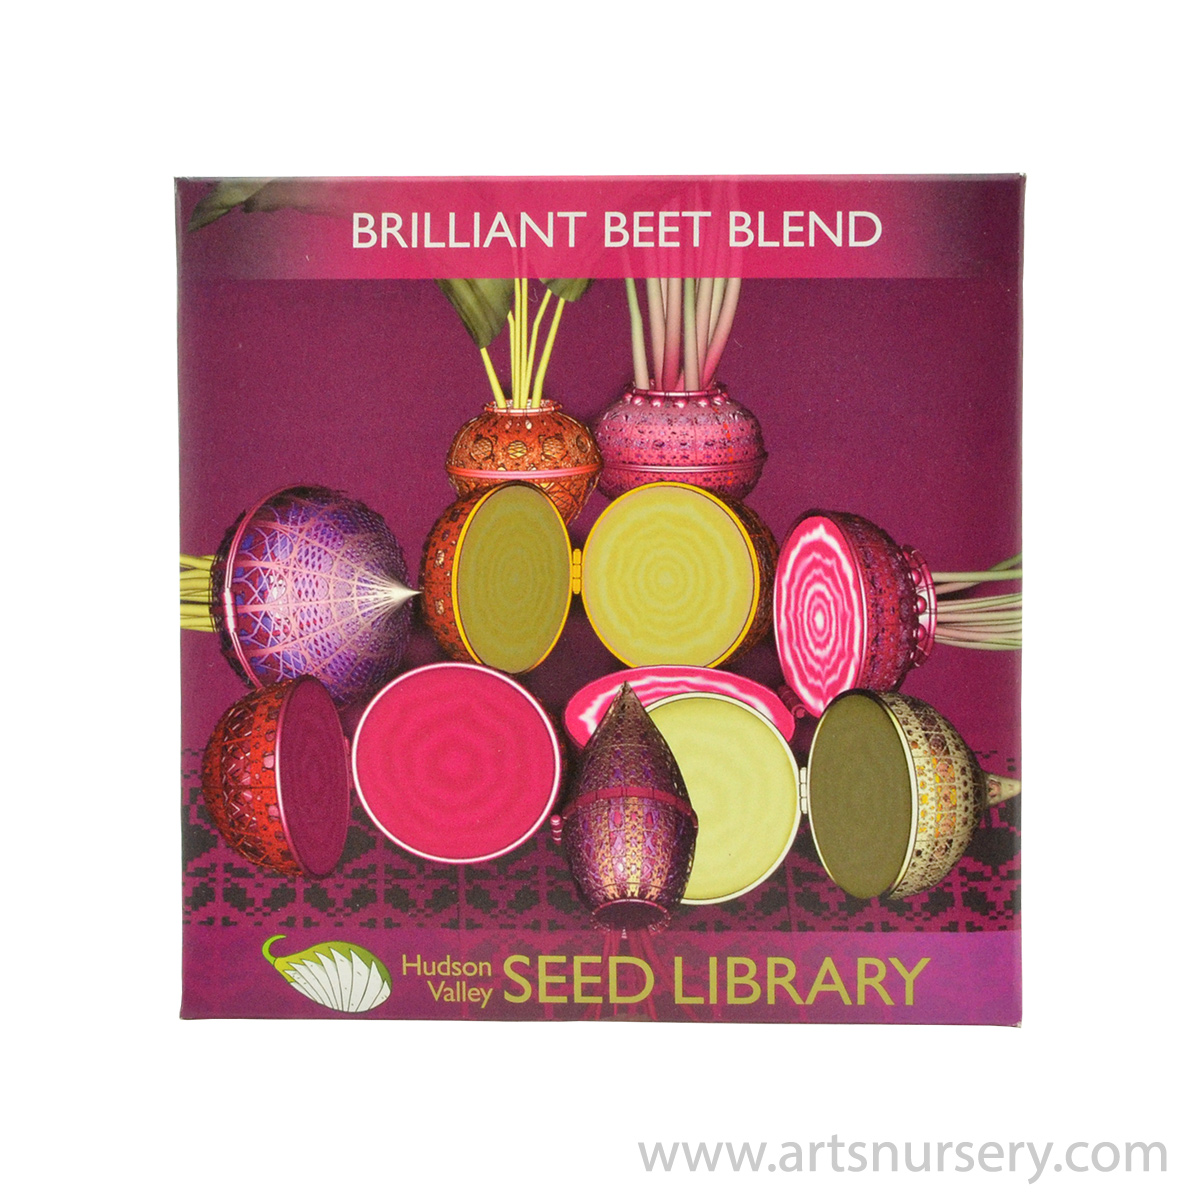 Brilliant Beet Blend Hudson Valley Seeds